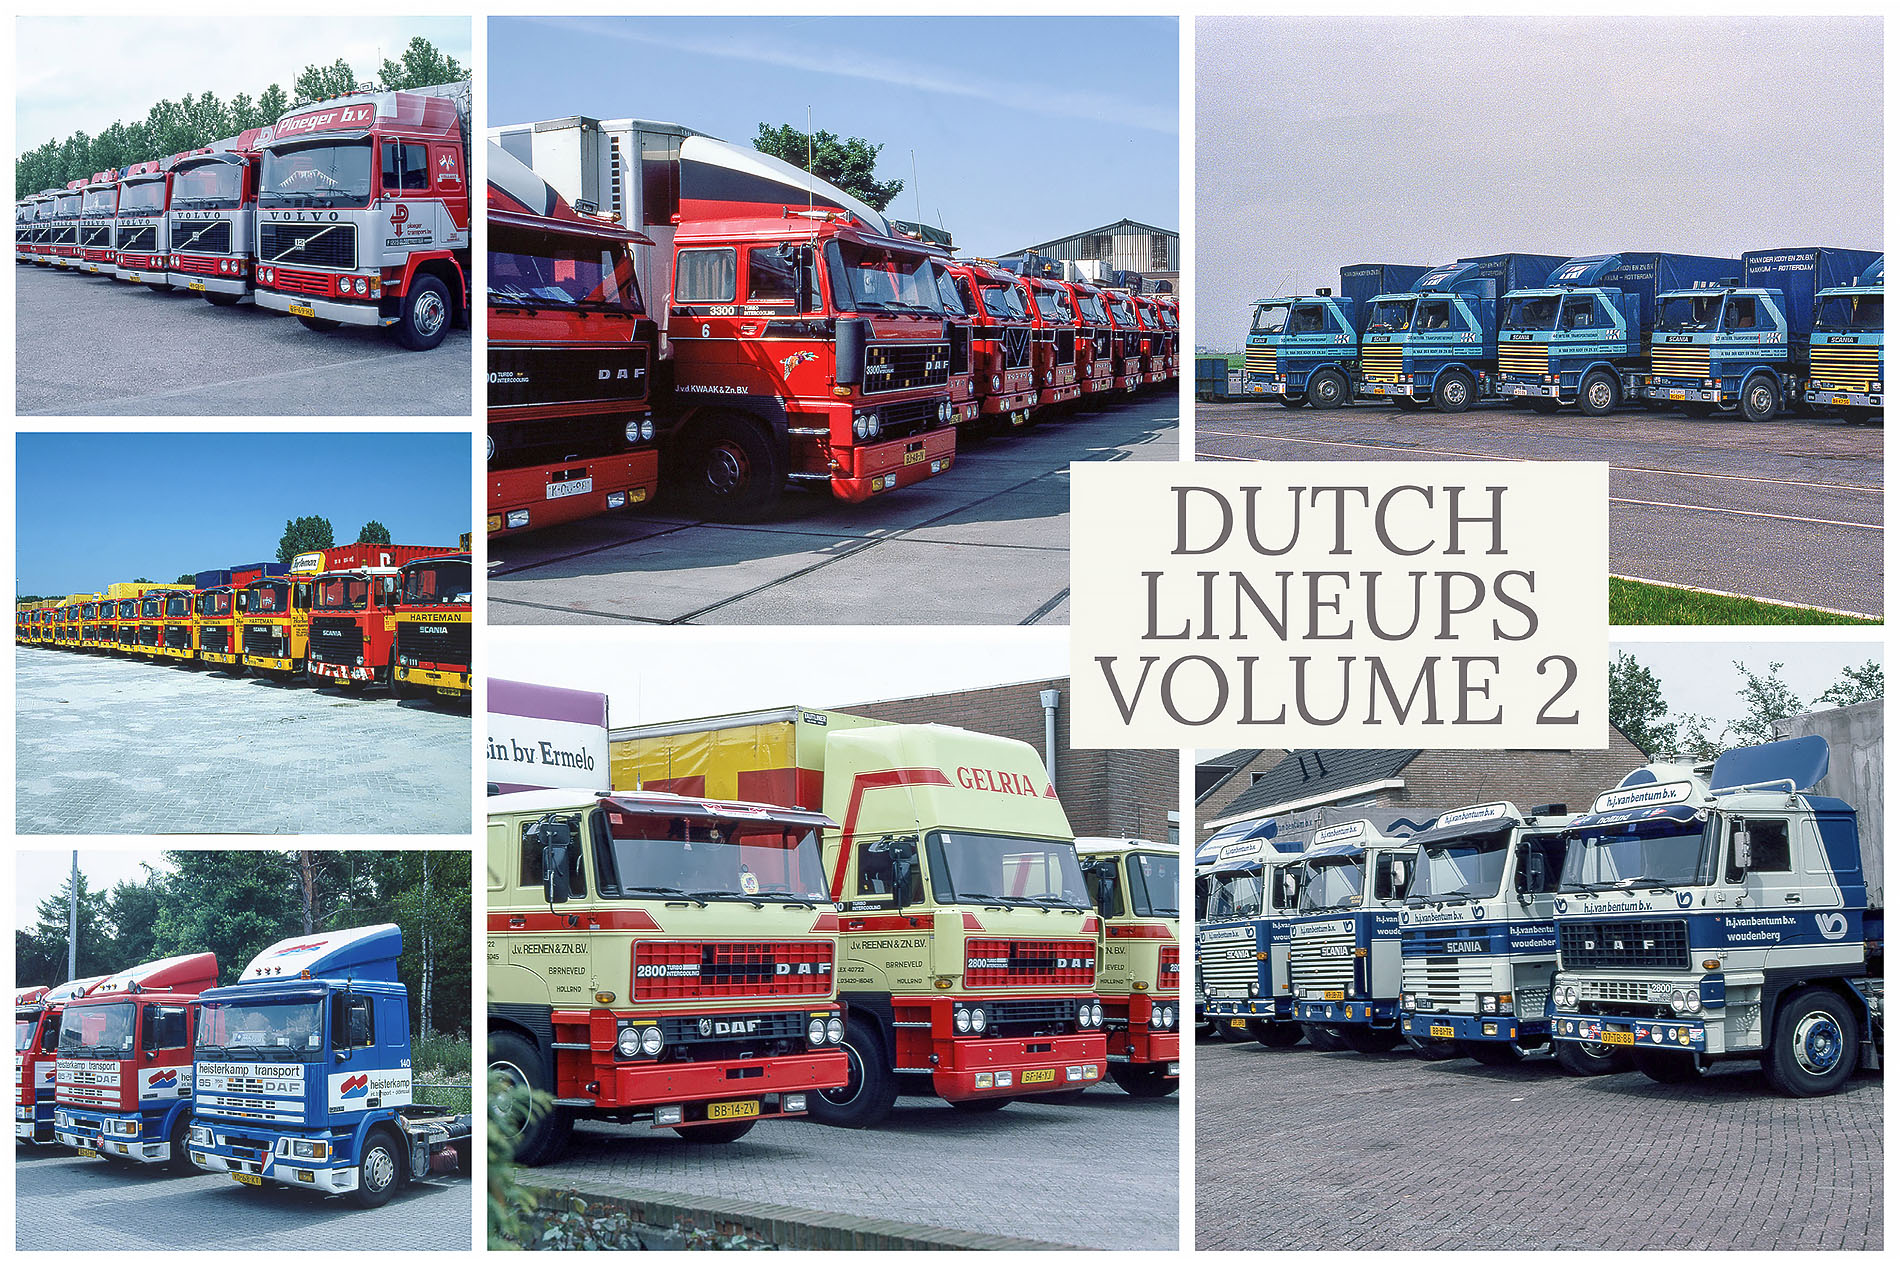 Dutch_lineups_volume_21900.jpg